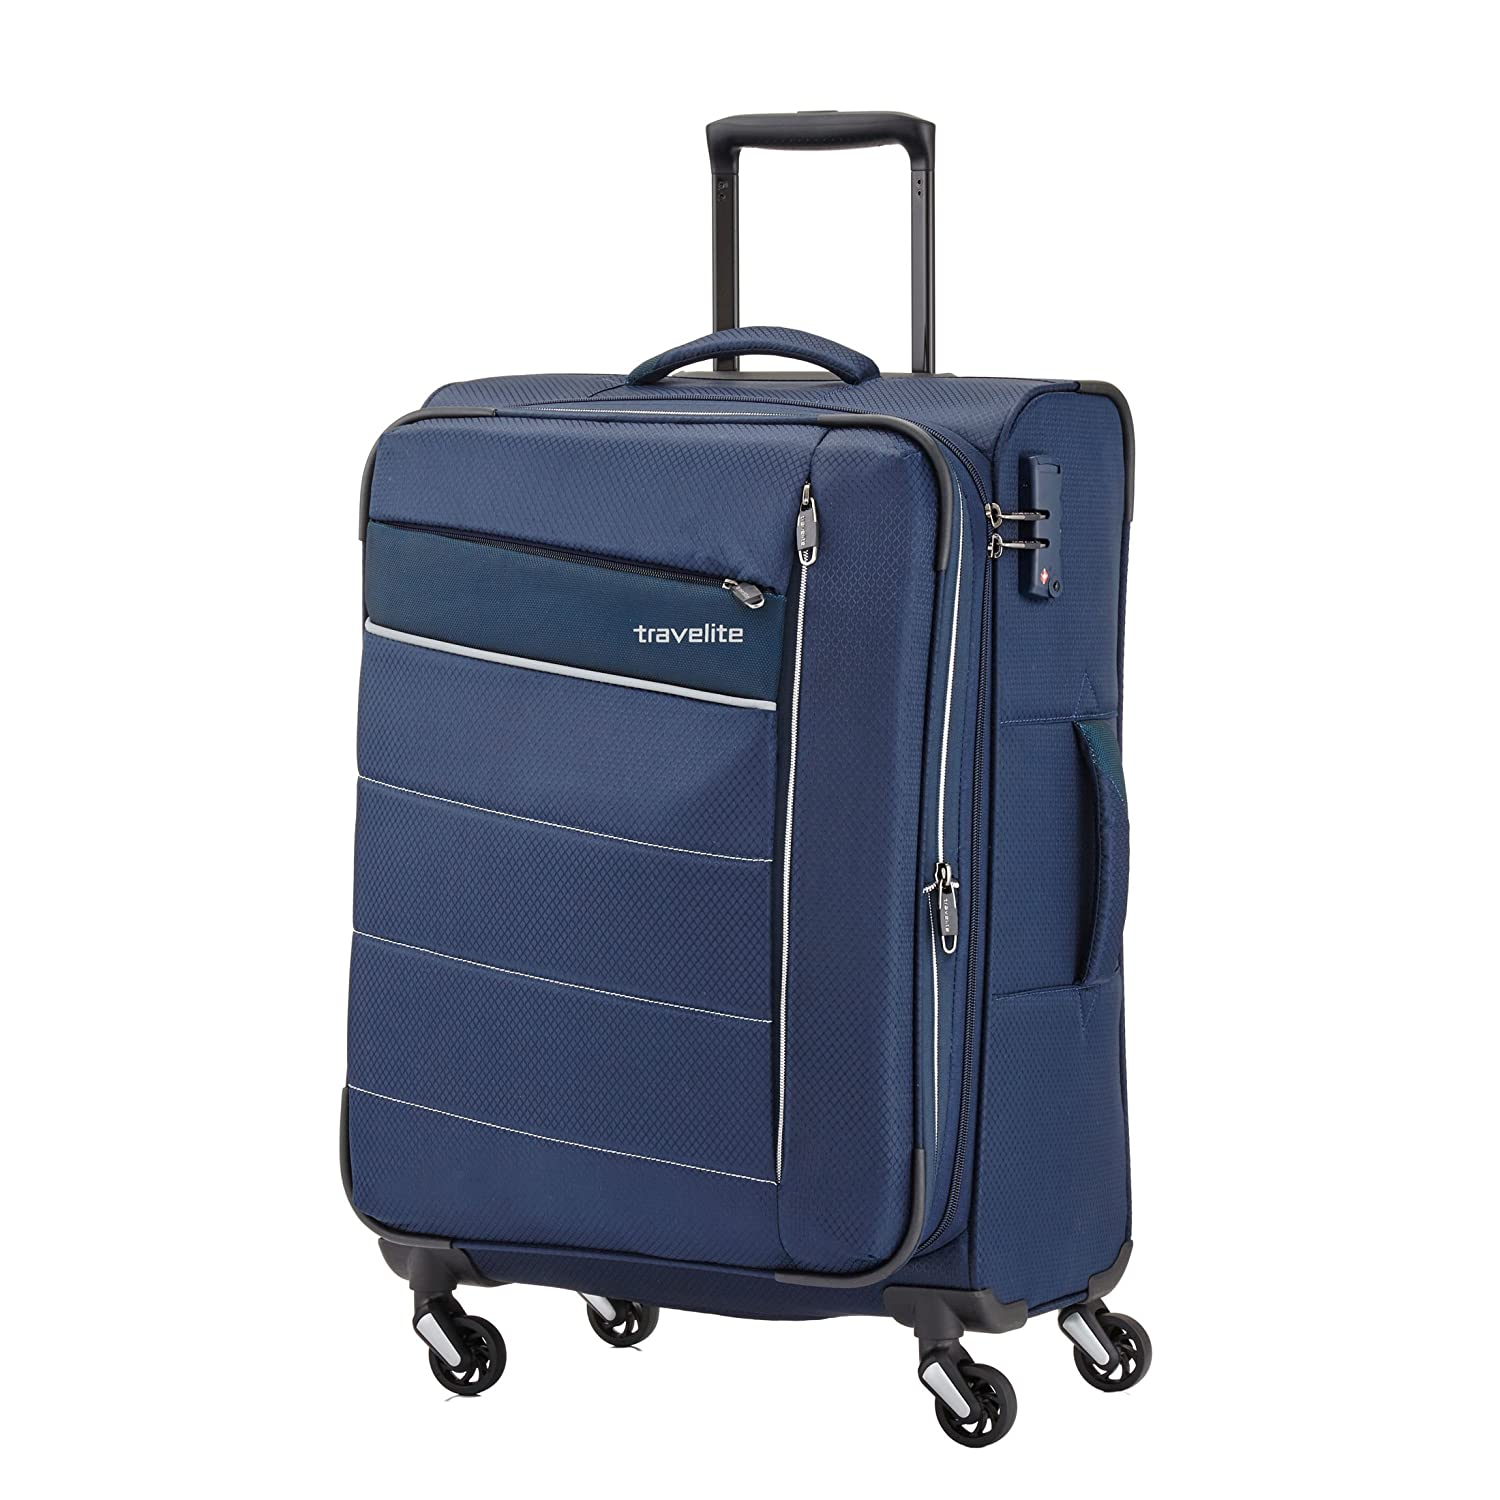 Travelite Vector 4-rad Trolley L 77 Cm Pilotenkoffer & Trolleys